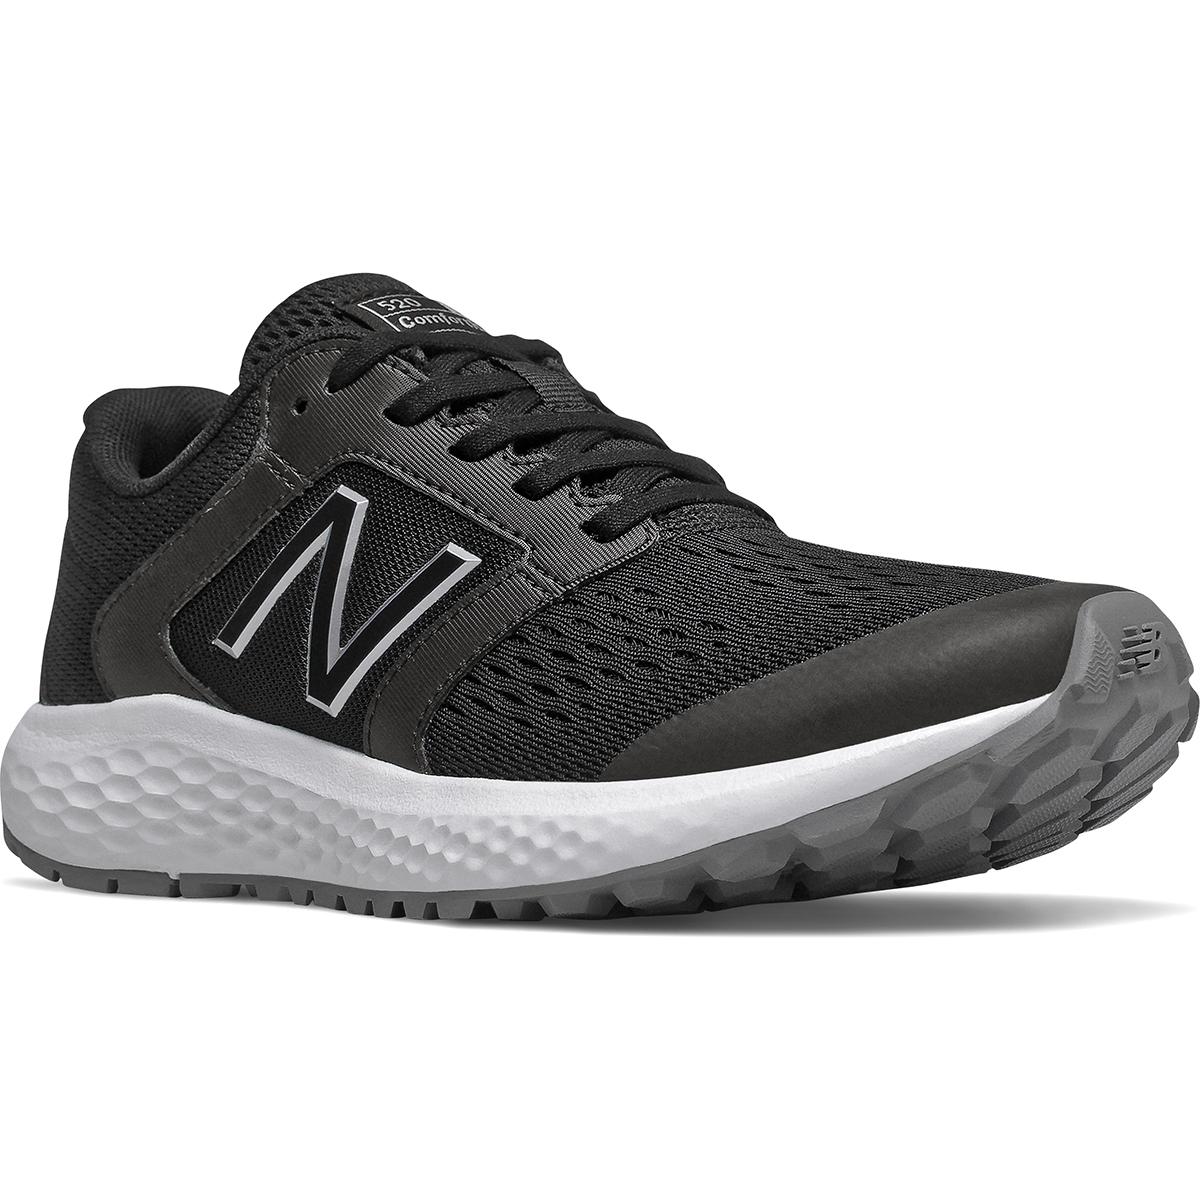 New Balance Men's 520 V5 Running Shoe, Wide - Black, 8